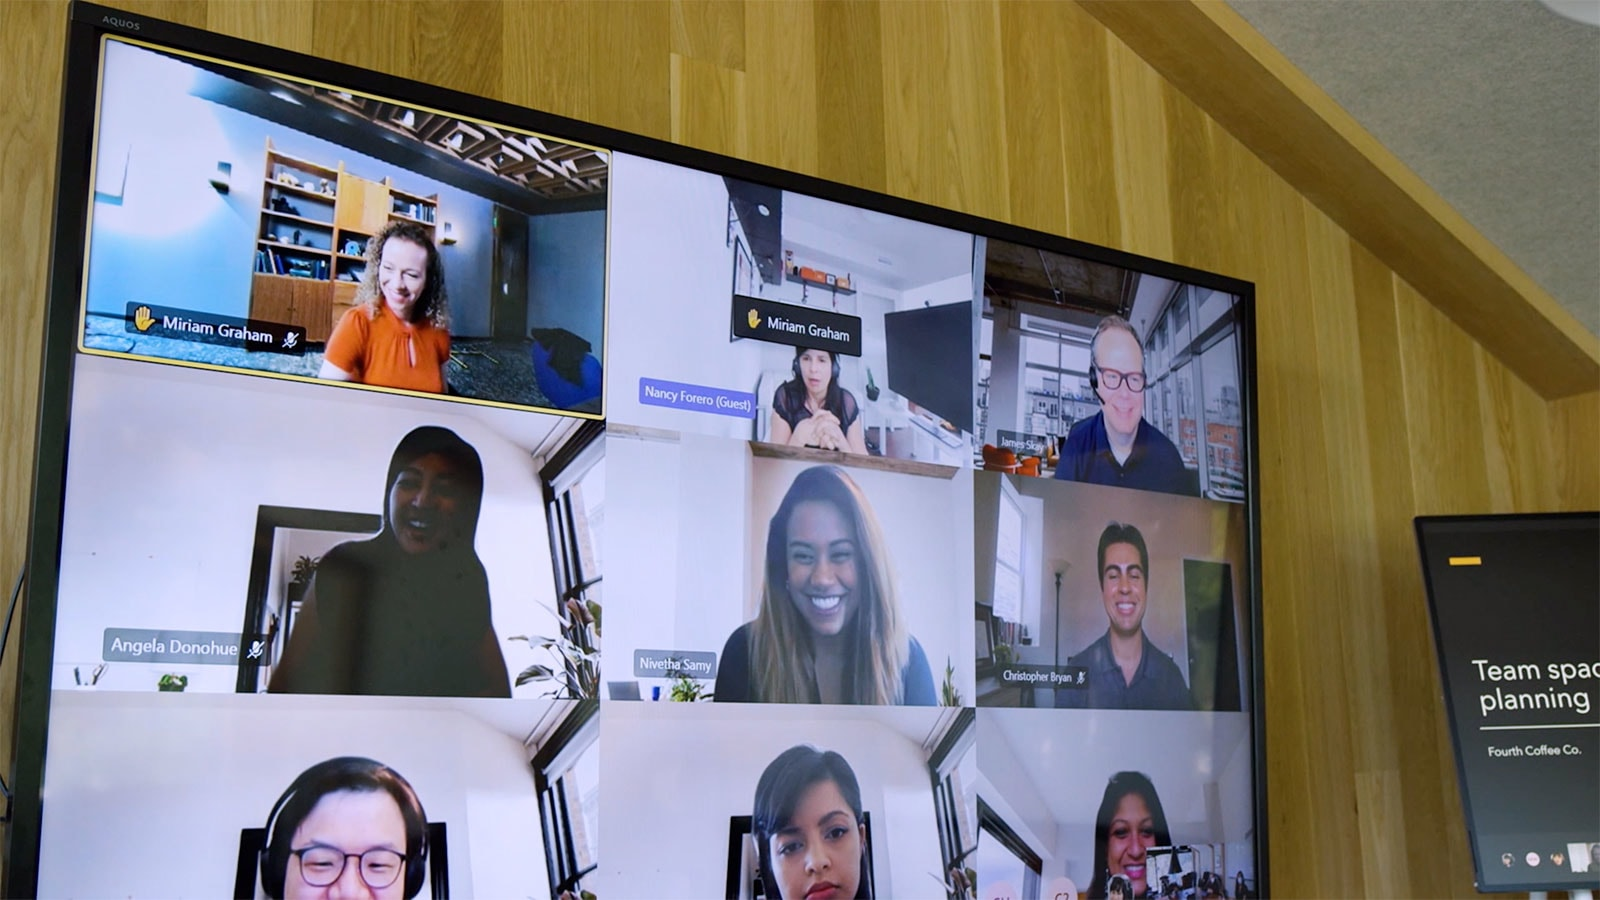 A Teams video call indicating that two of the participants have raised their hand to speak.